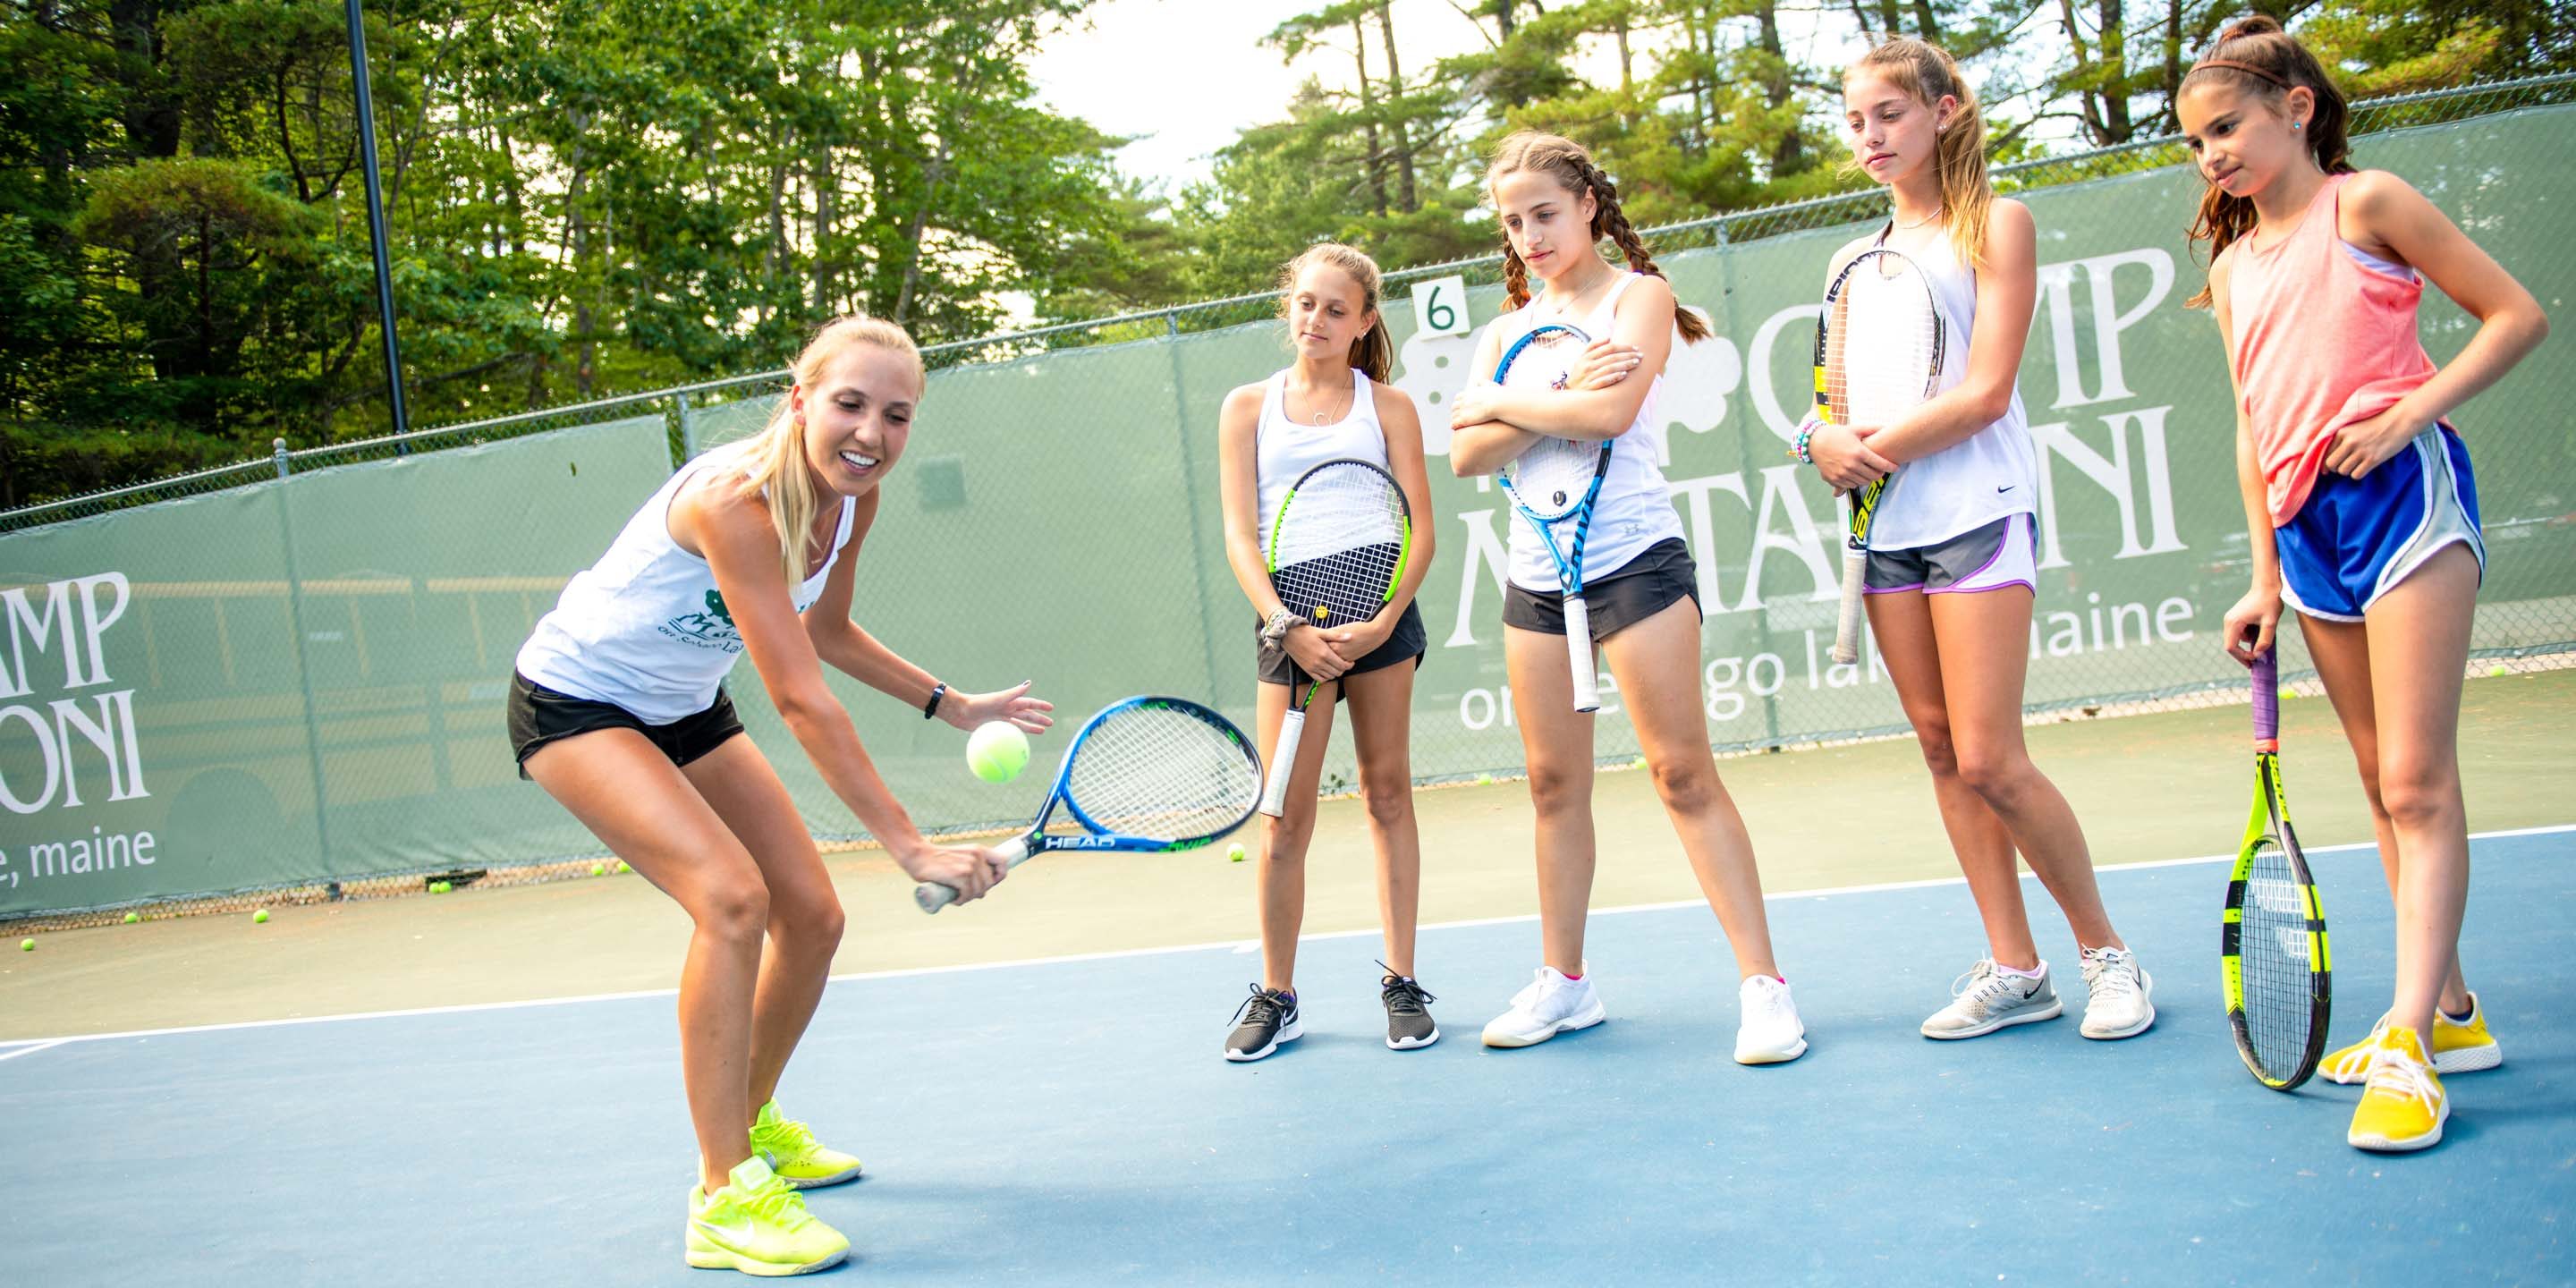 Counselor teaches campers how to play tennis